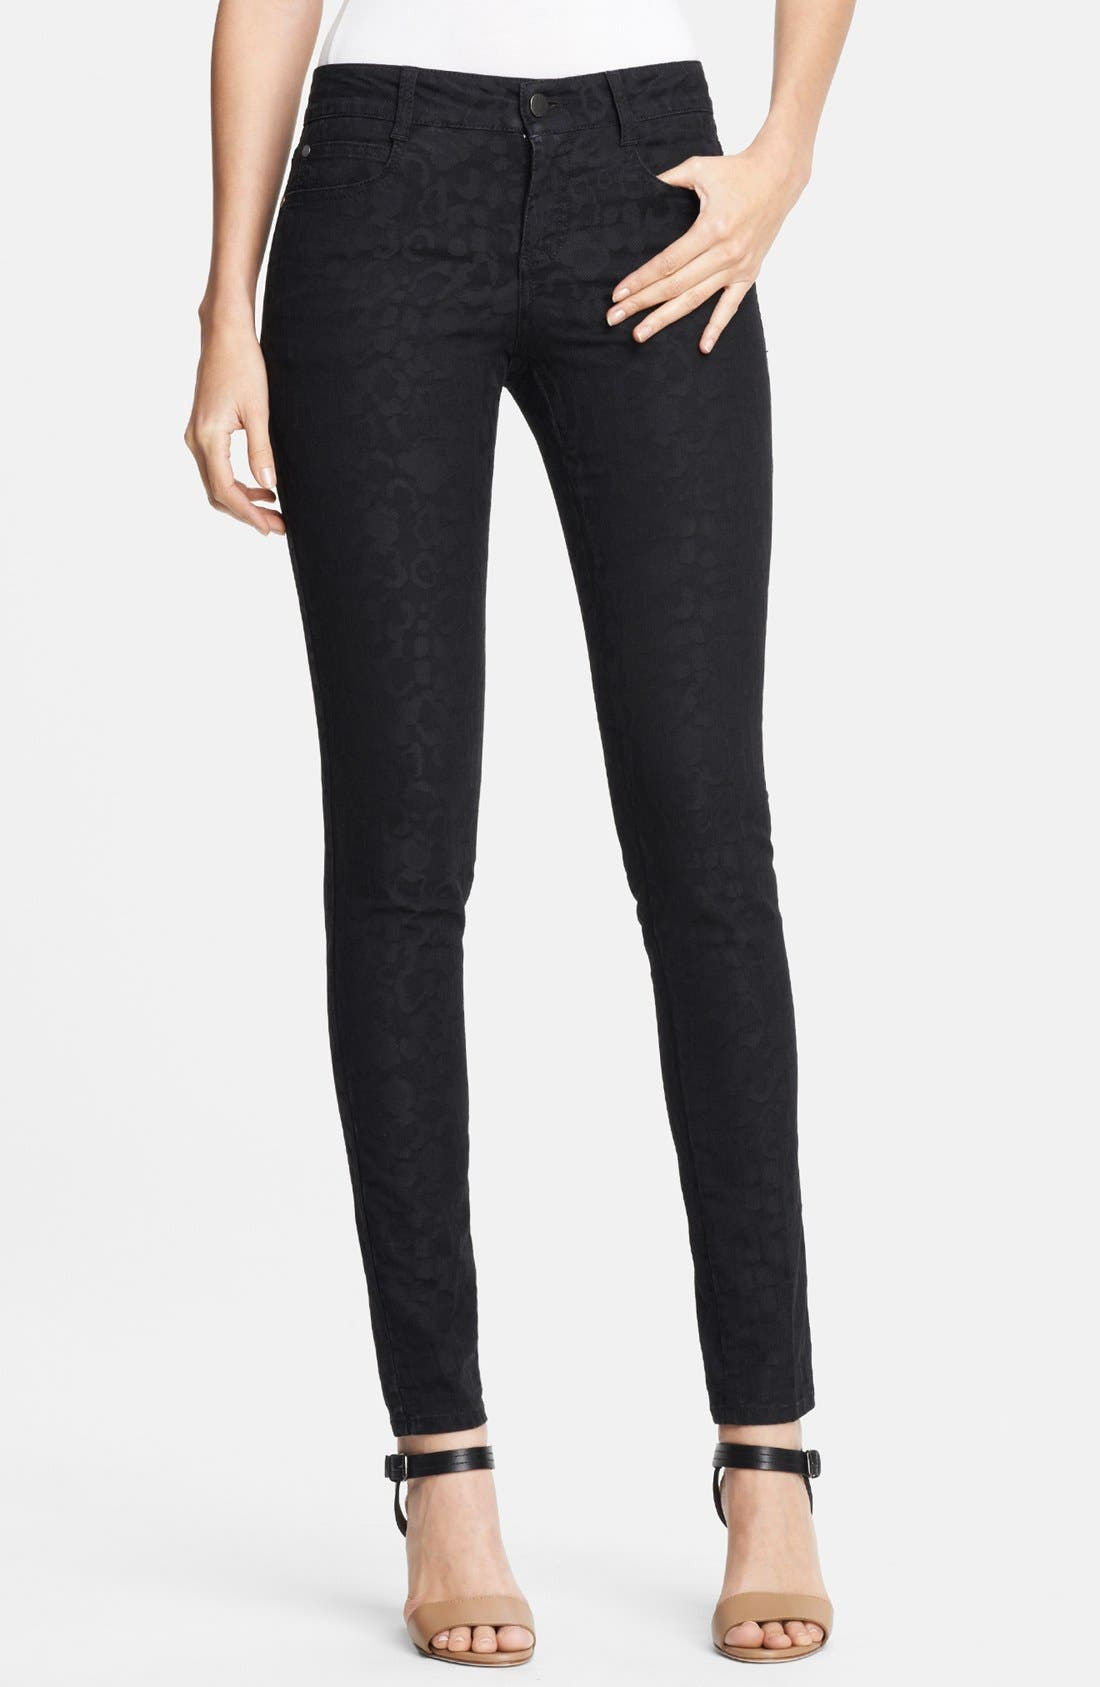 Alternate Image 1 Selected - Stella McCartney 'Lina' Leopard Jacquard Skinny Jeans